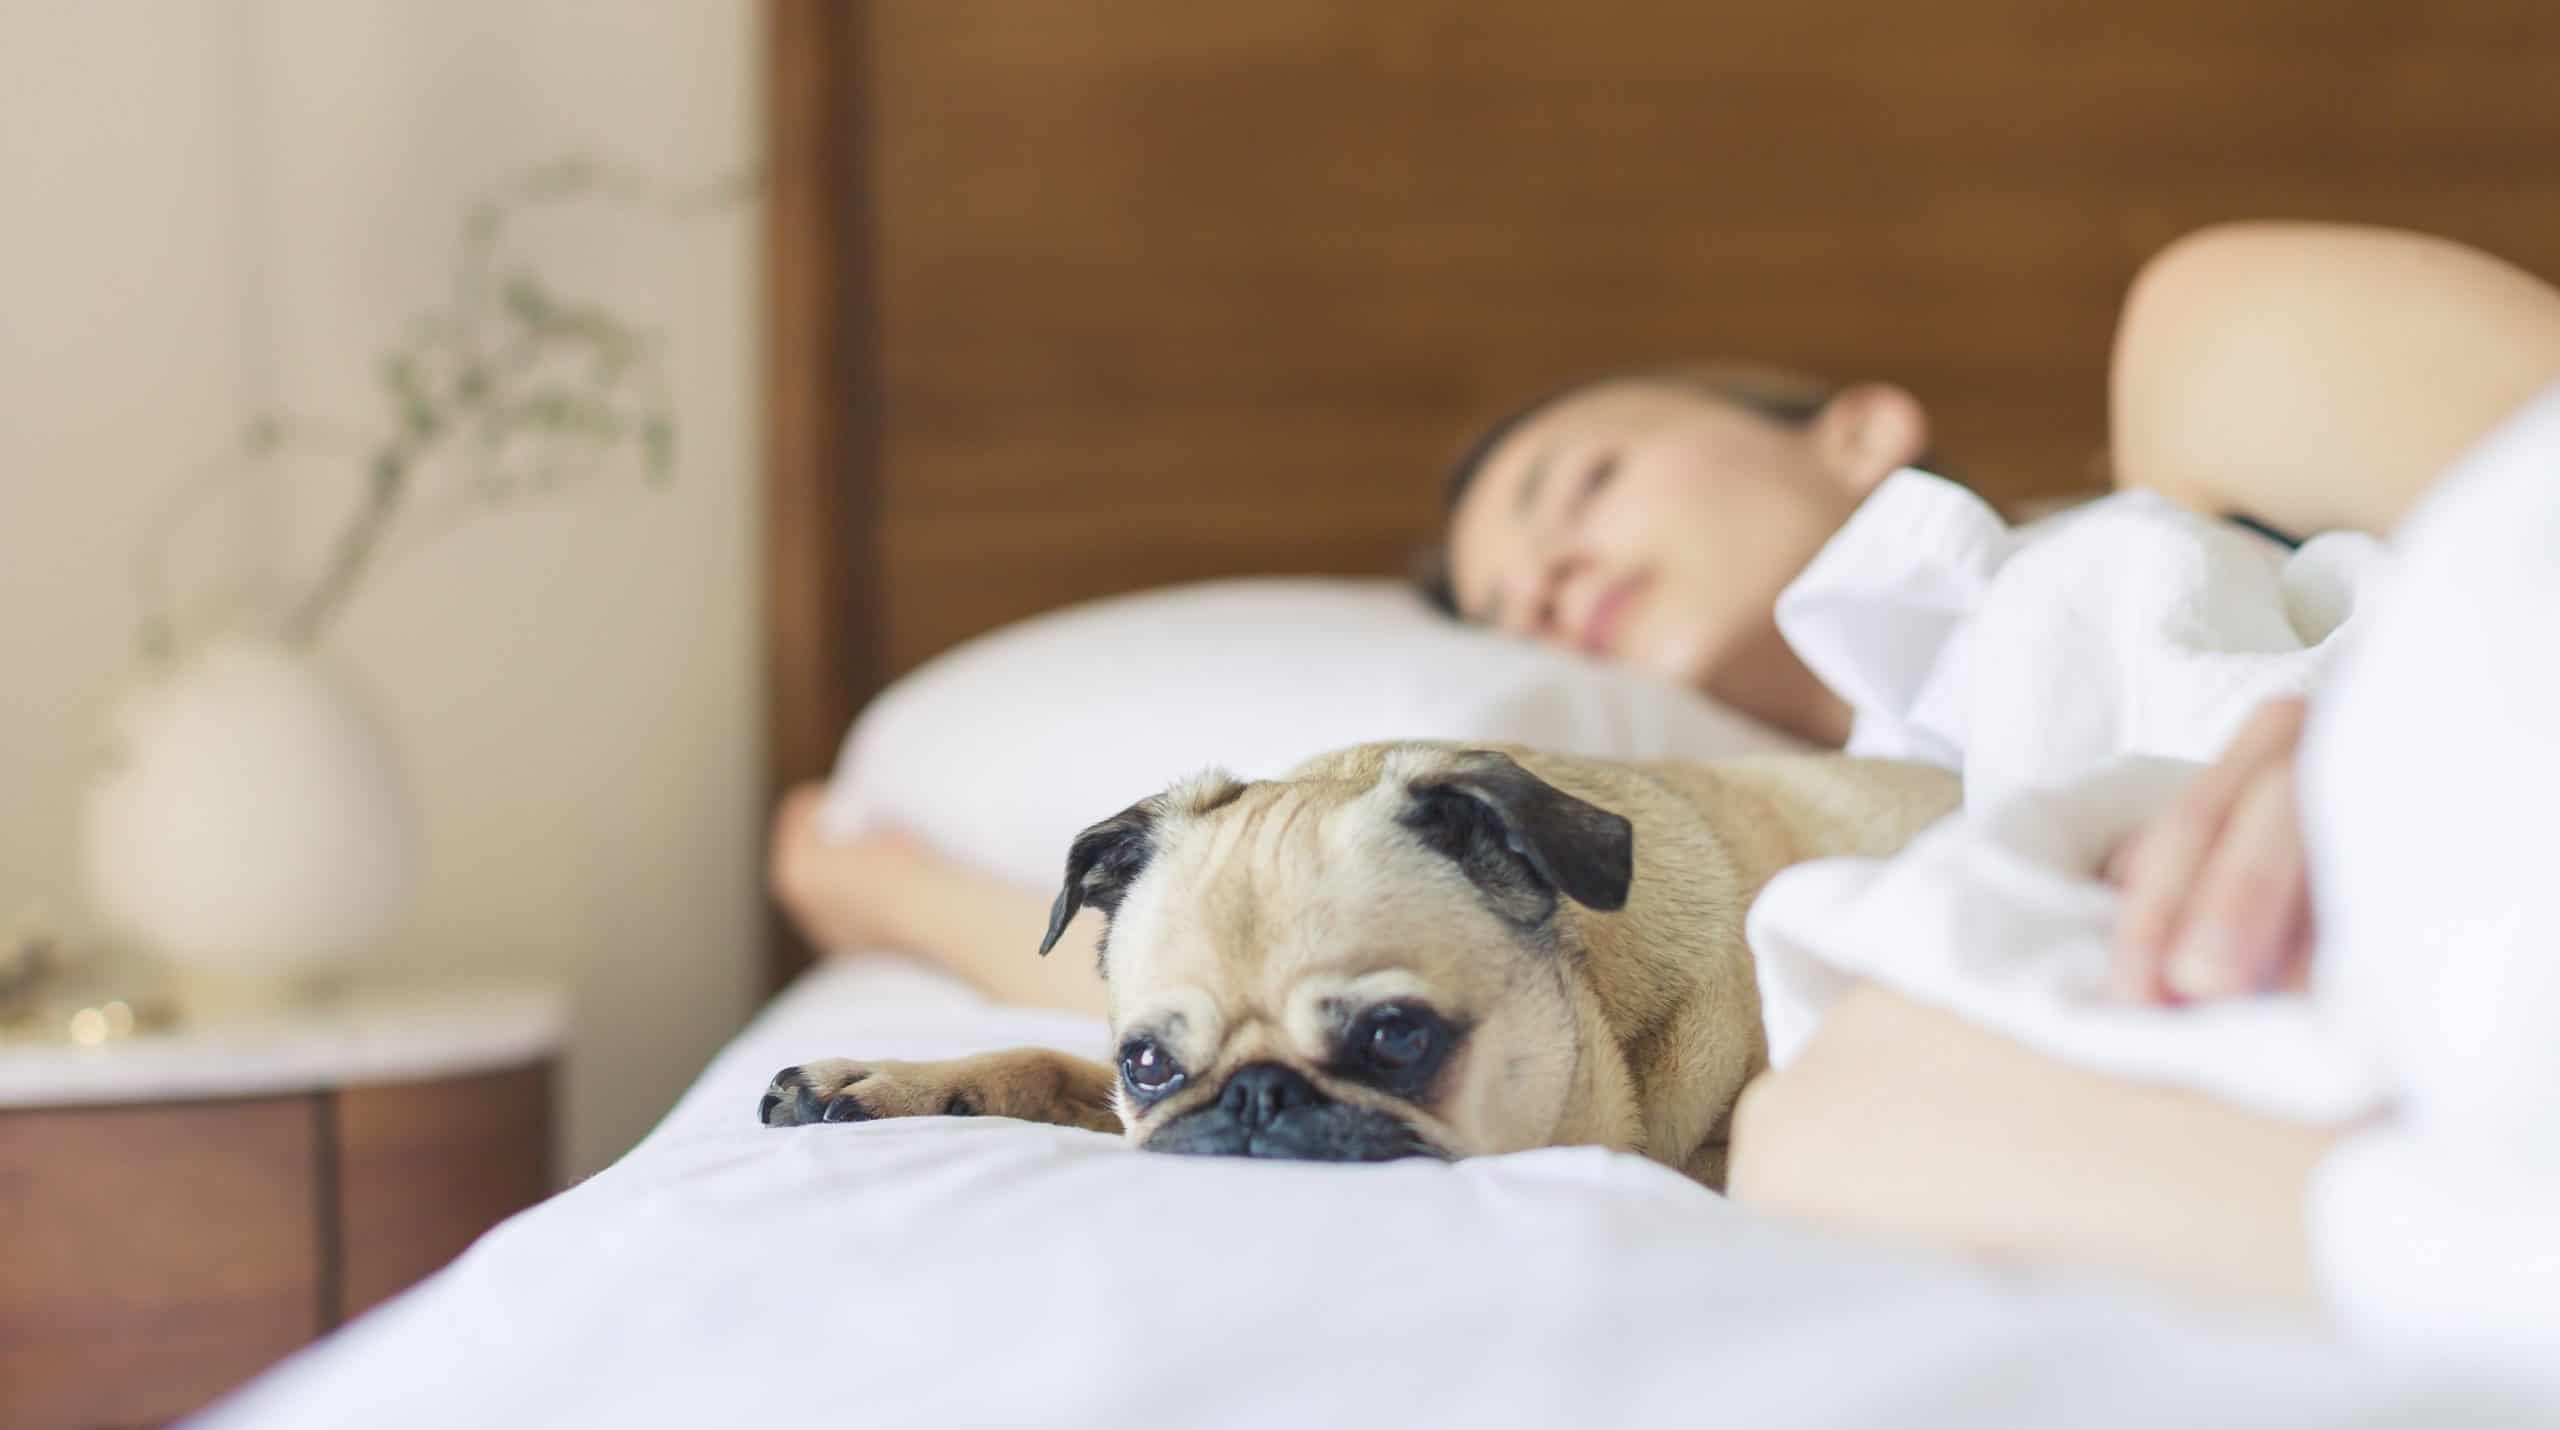 Dog Behaviourist Explains How to Help Your Dog Cope During COVID-19 Lockdown Measures